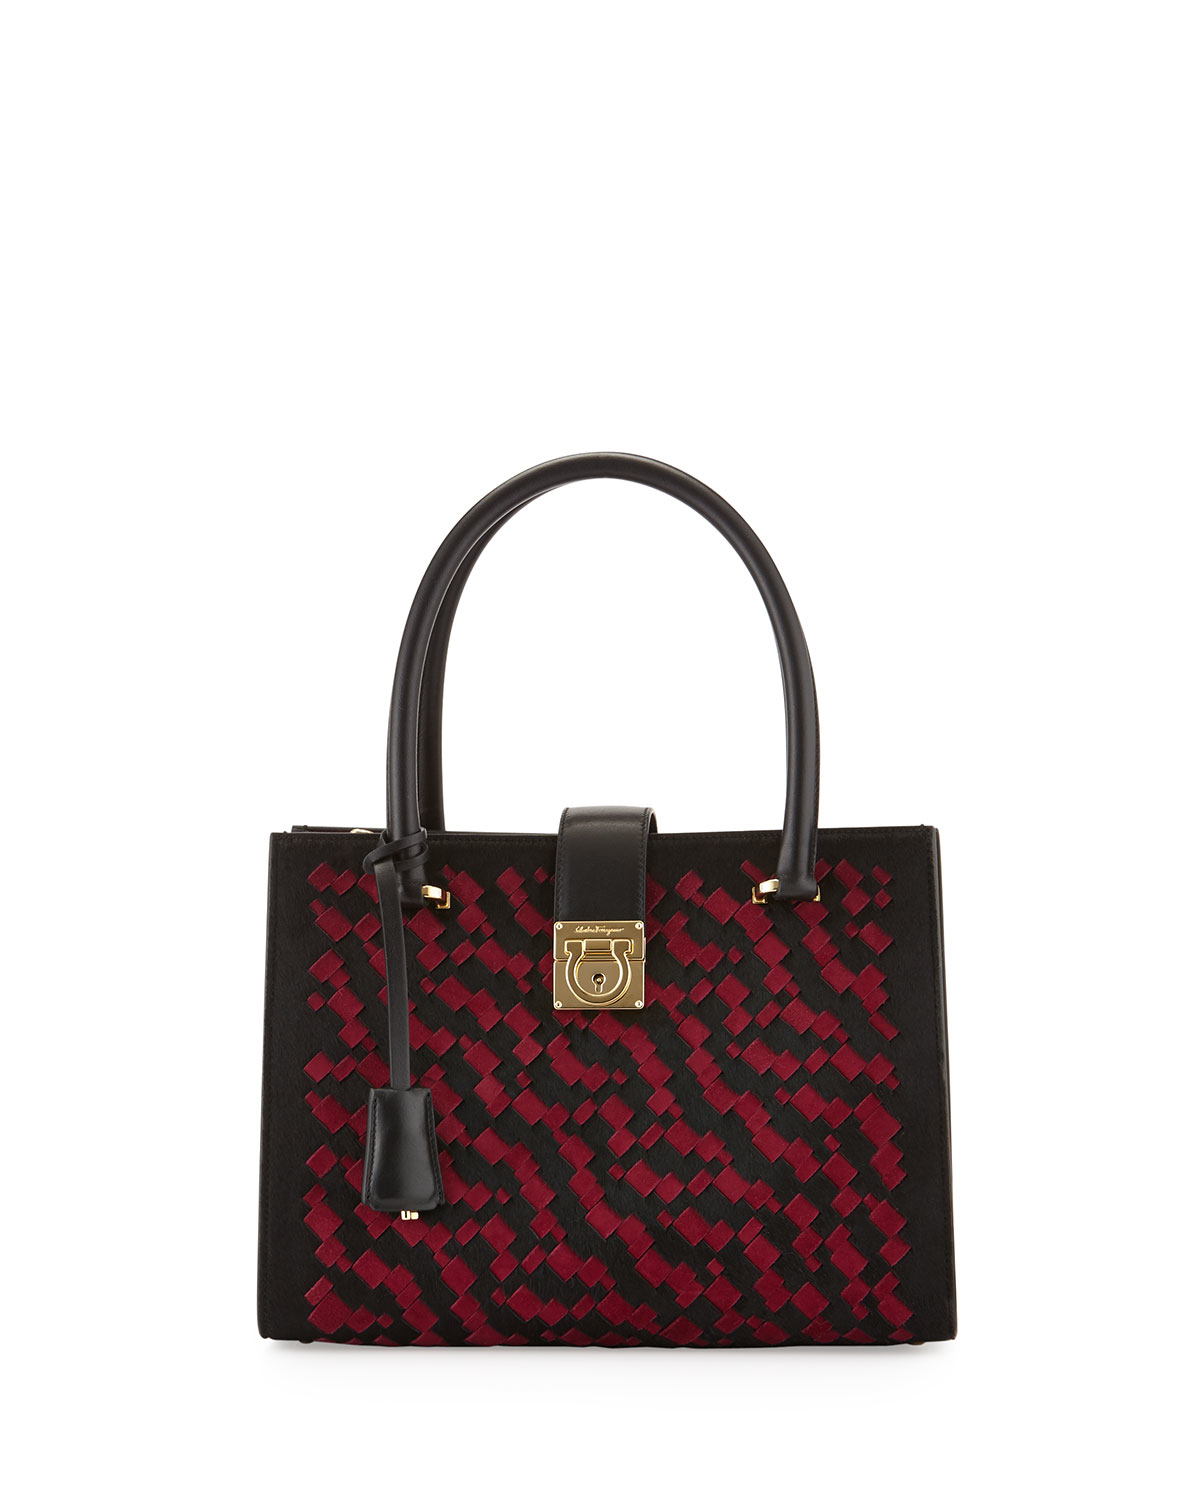 9f24cf80c79a Lyst - Ferragamo Juliette Interwoven Tote Bag in Black